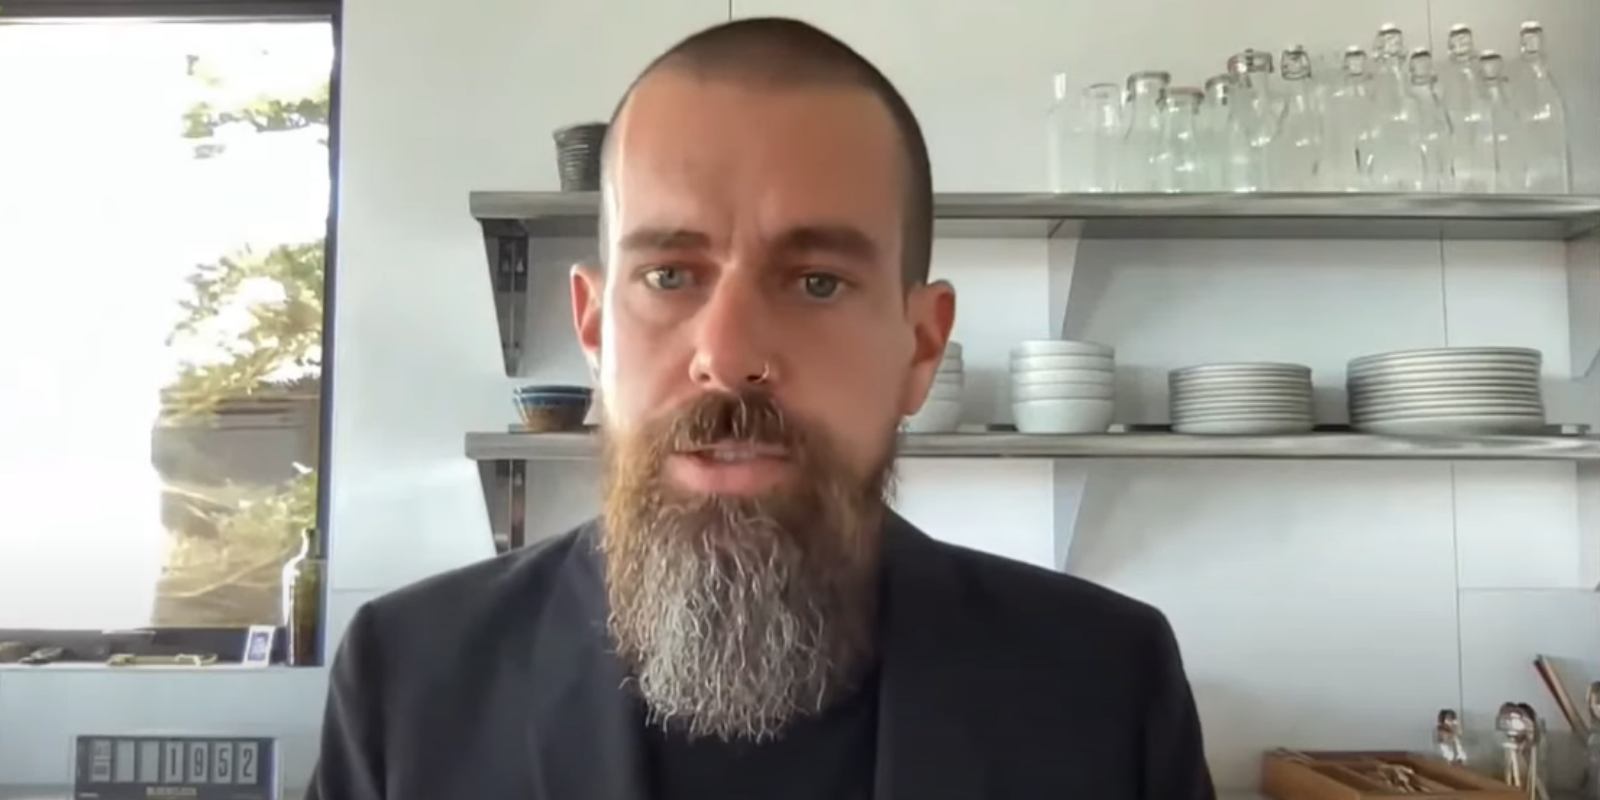 Twitter CEO says platform made a mistake by blocking Hunter Biden bombshell, but won't say who did it